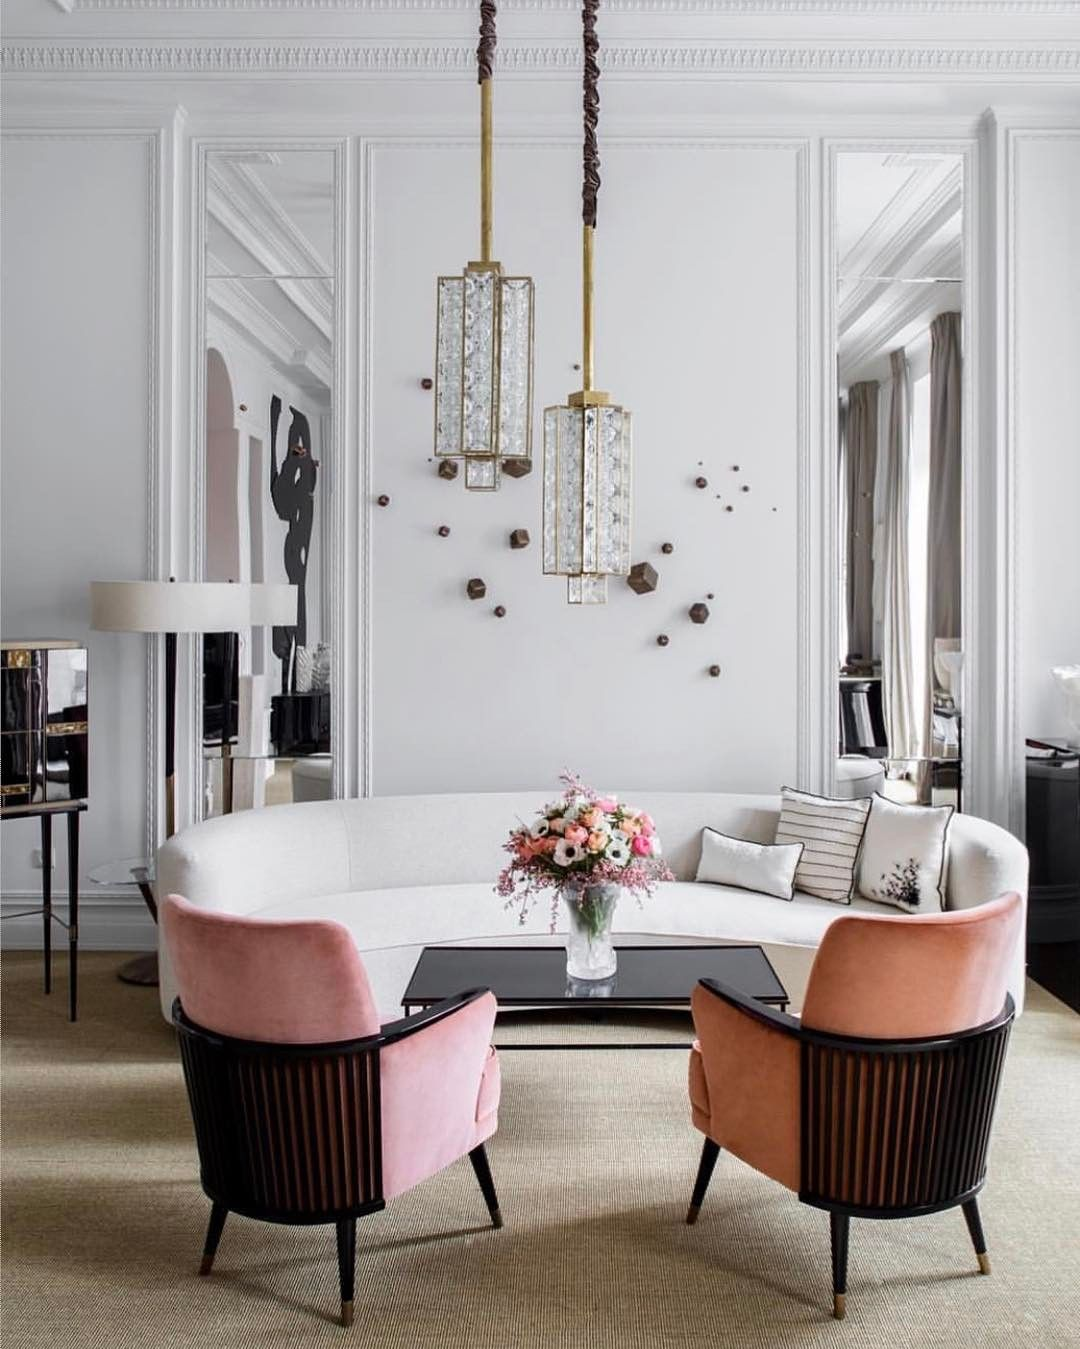 White Living Space With Blush Pink Chairs And Brass Accents